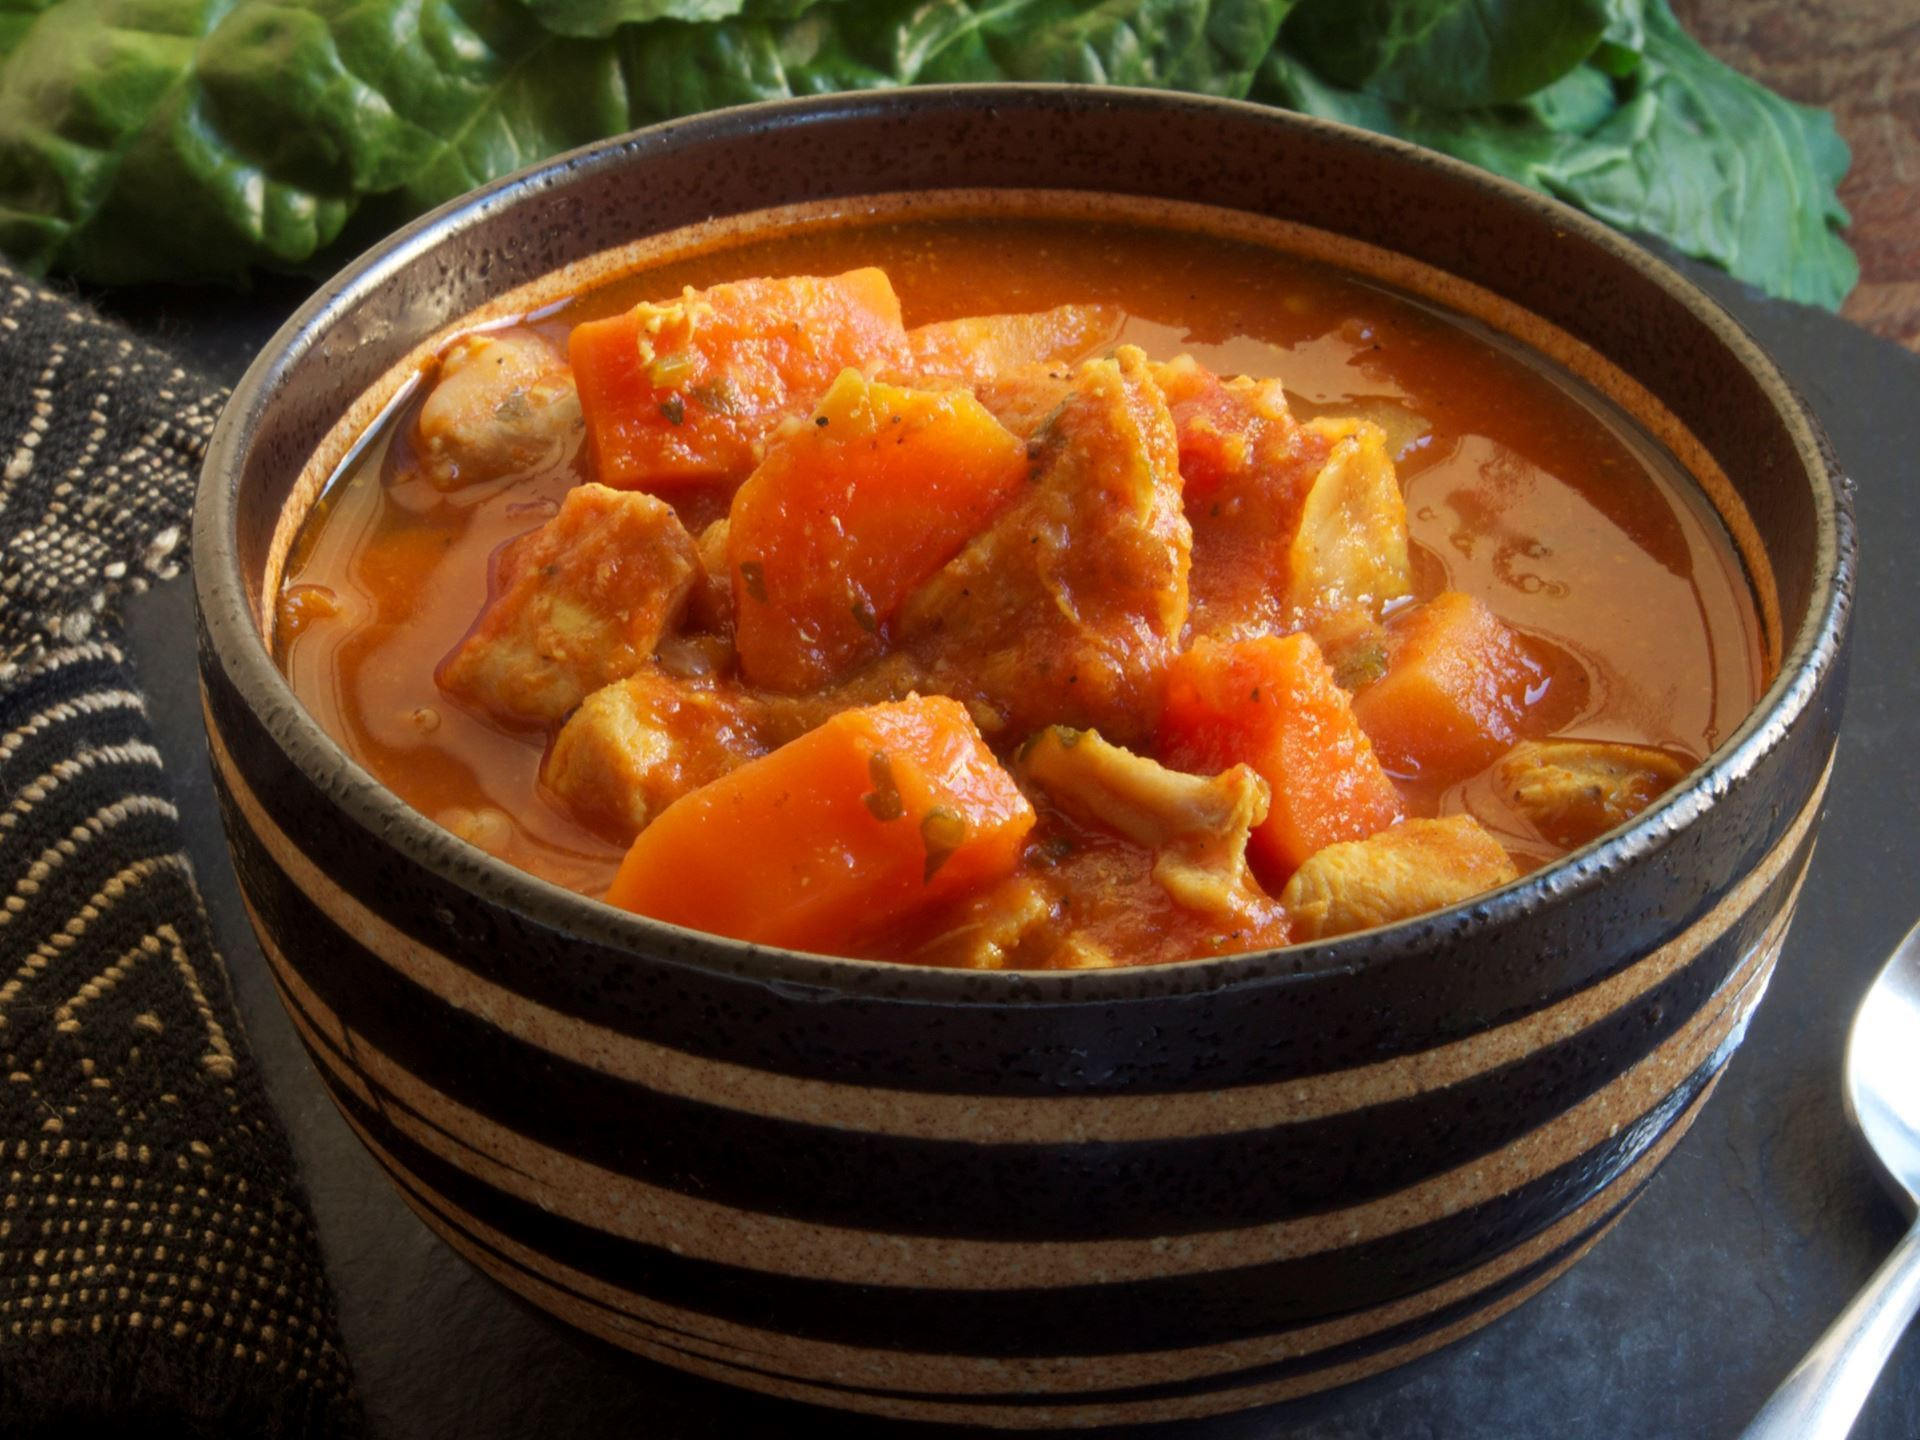 Picture of 22 oz -- West African Chicken Stew with Cabbage and Carrots